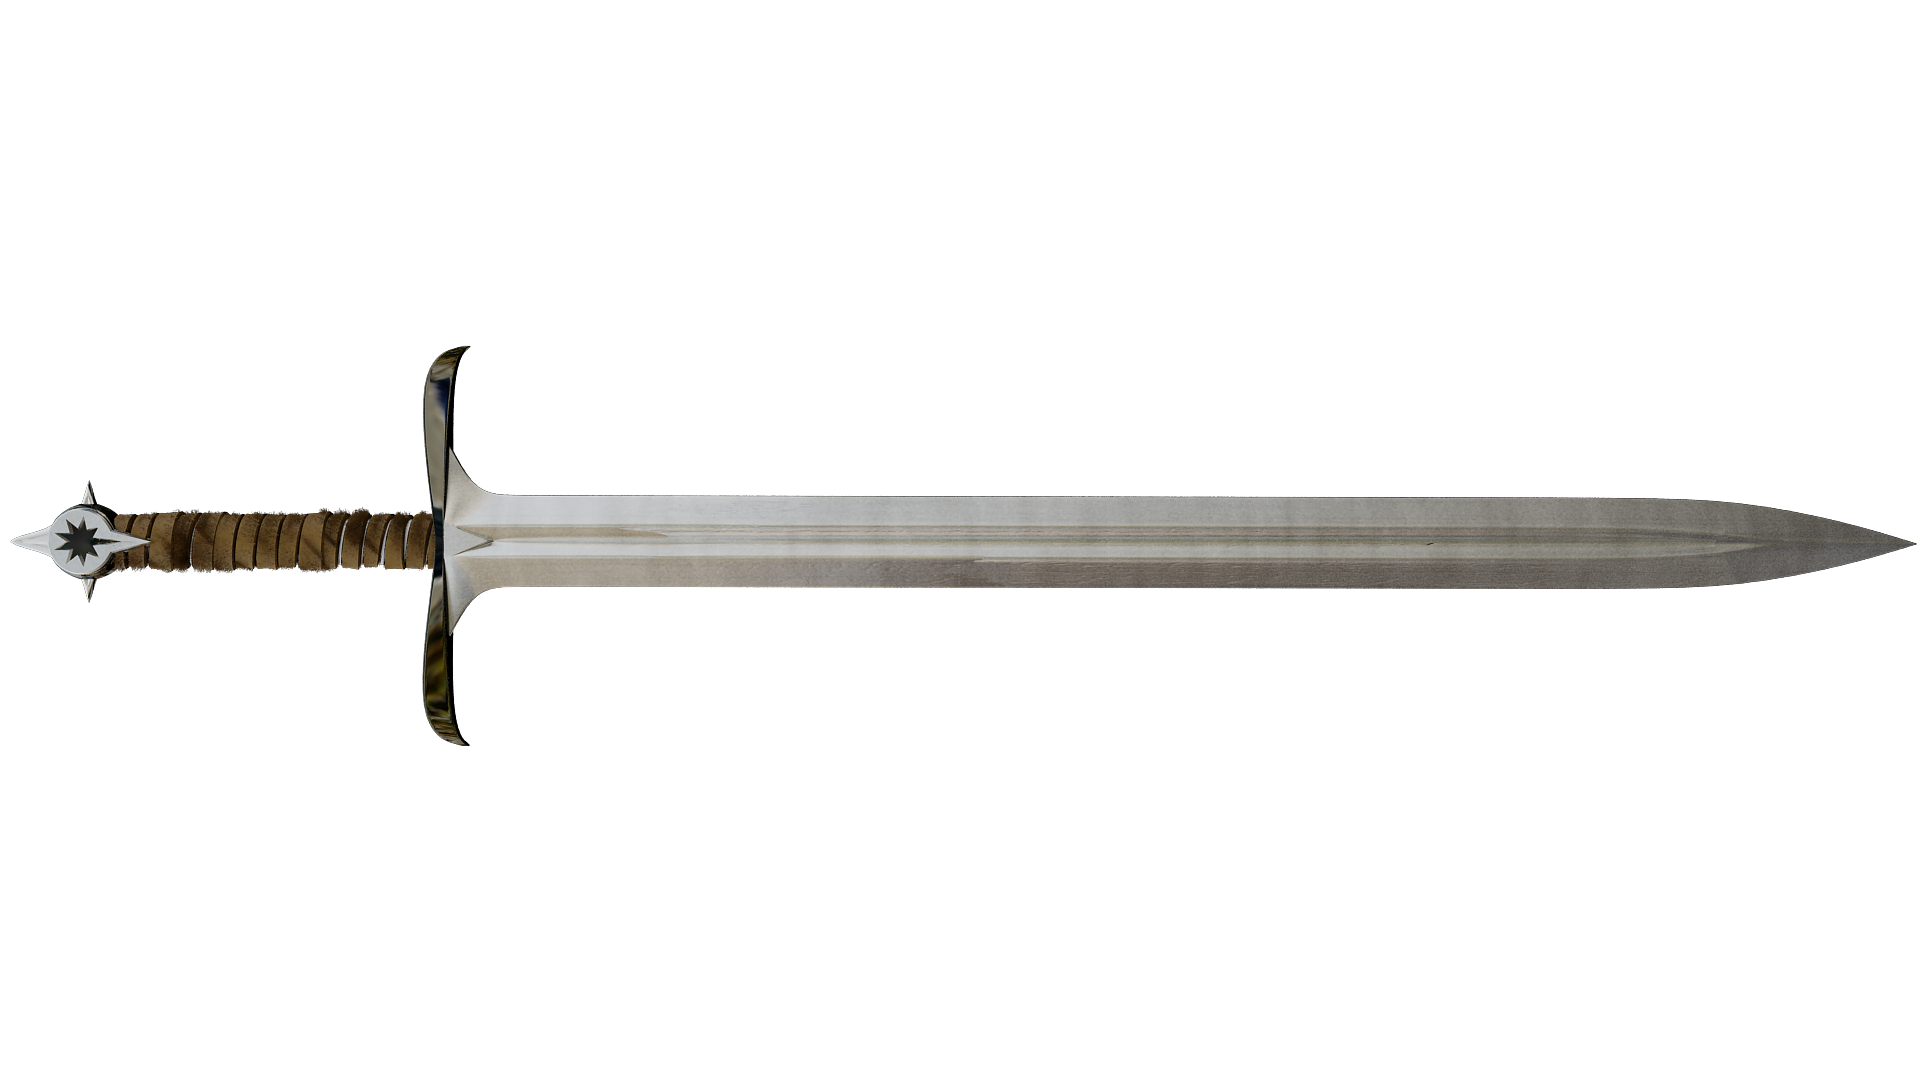 Passage au mode hardcore Sword-hd-png-sword-png-image-1920